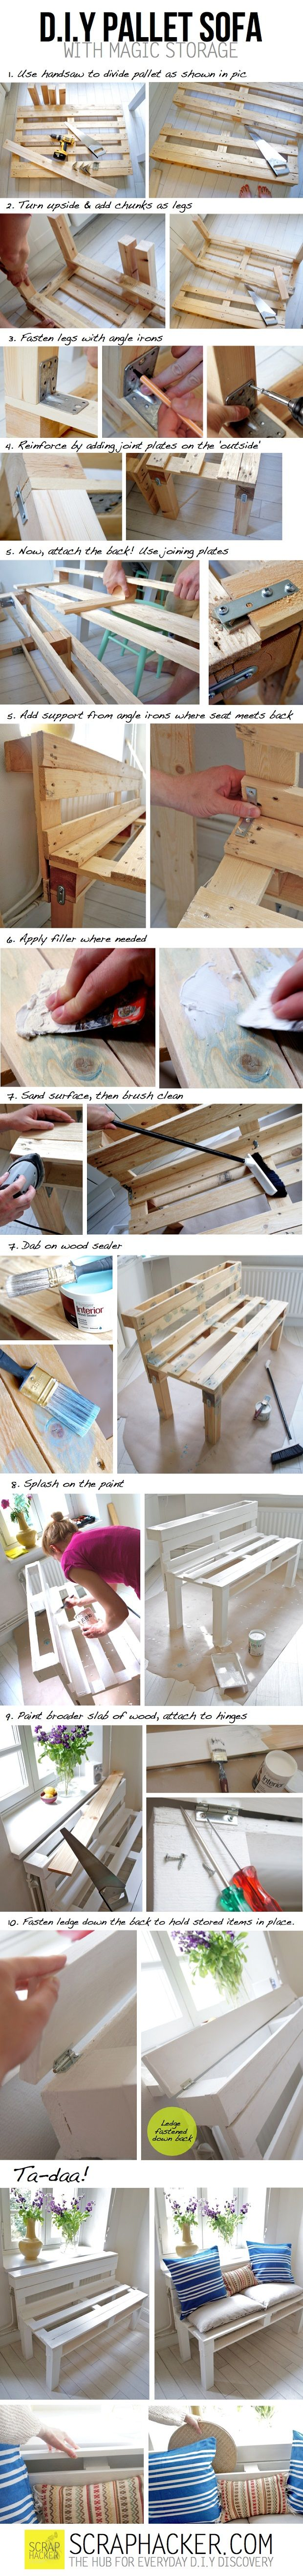 Used Pallets DIY Projects and Ideas                                                                                                                                                                                 Más